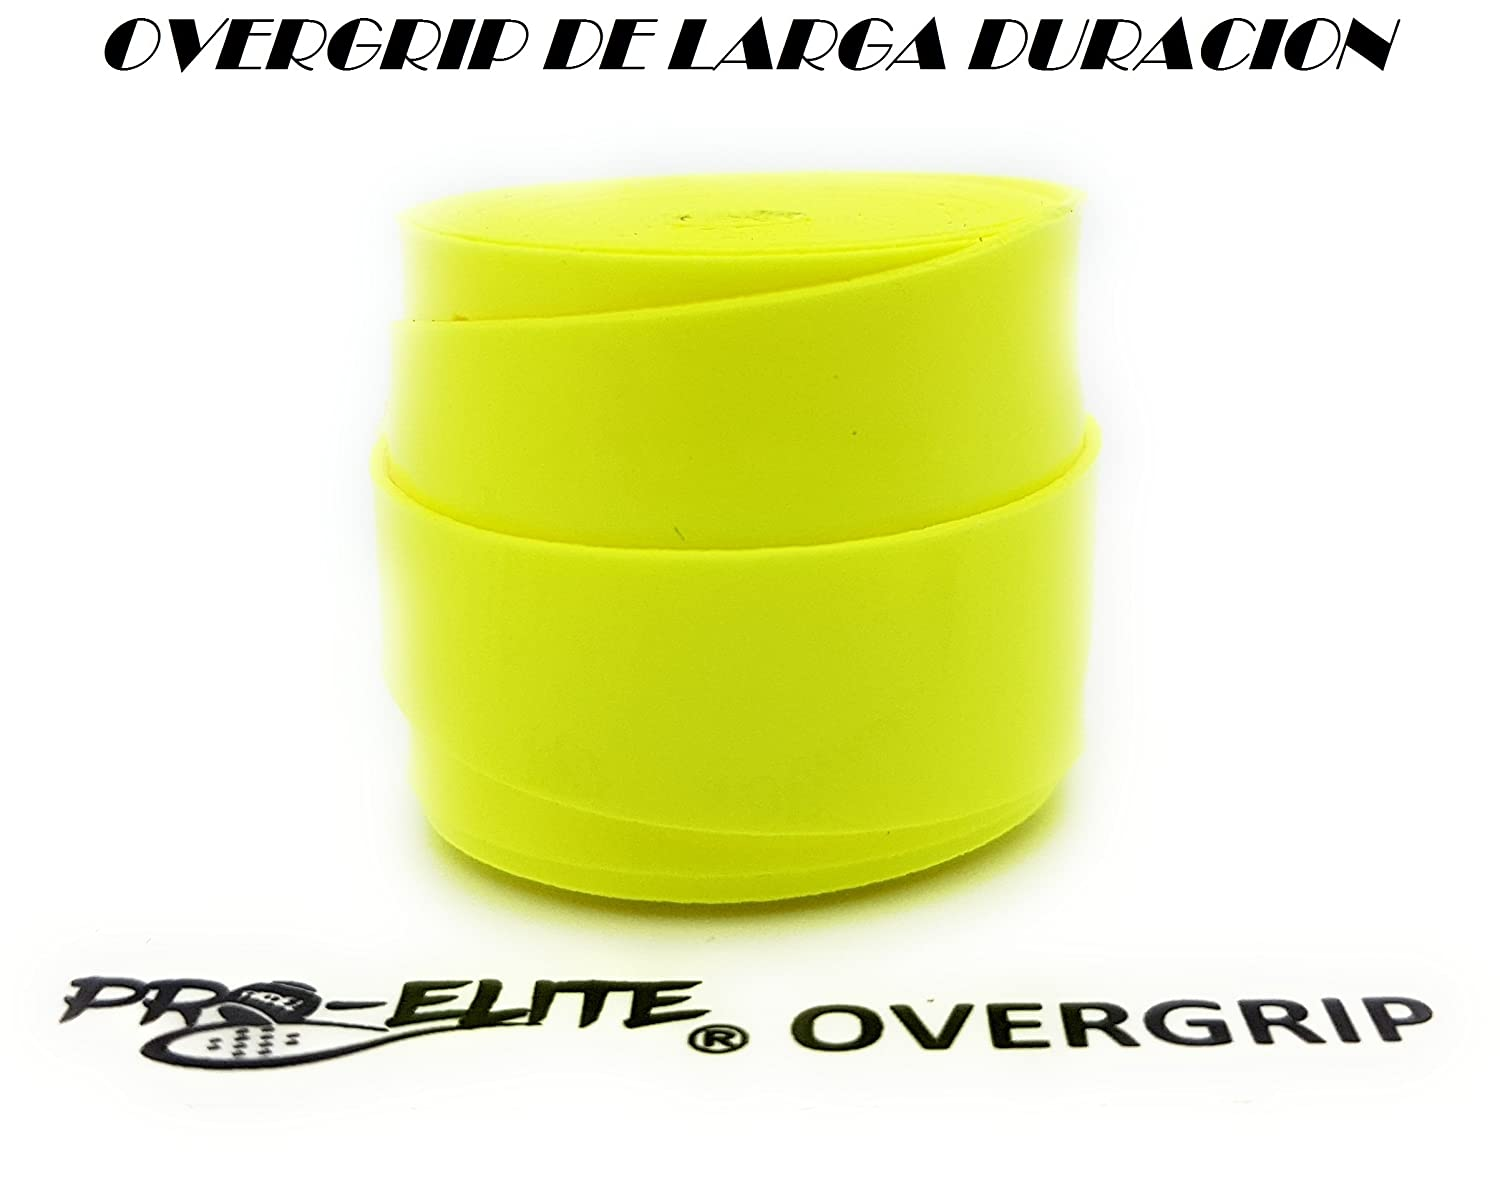 overgrip Pro Elite Premium Liso Amarillo Flúor: Amazon.es ...